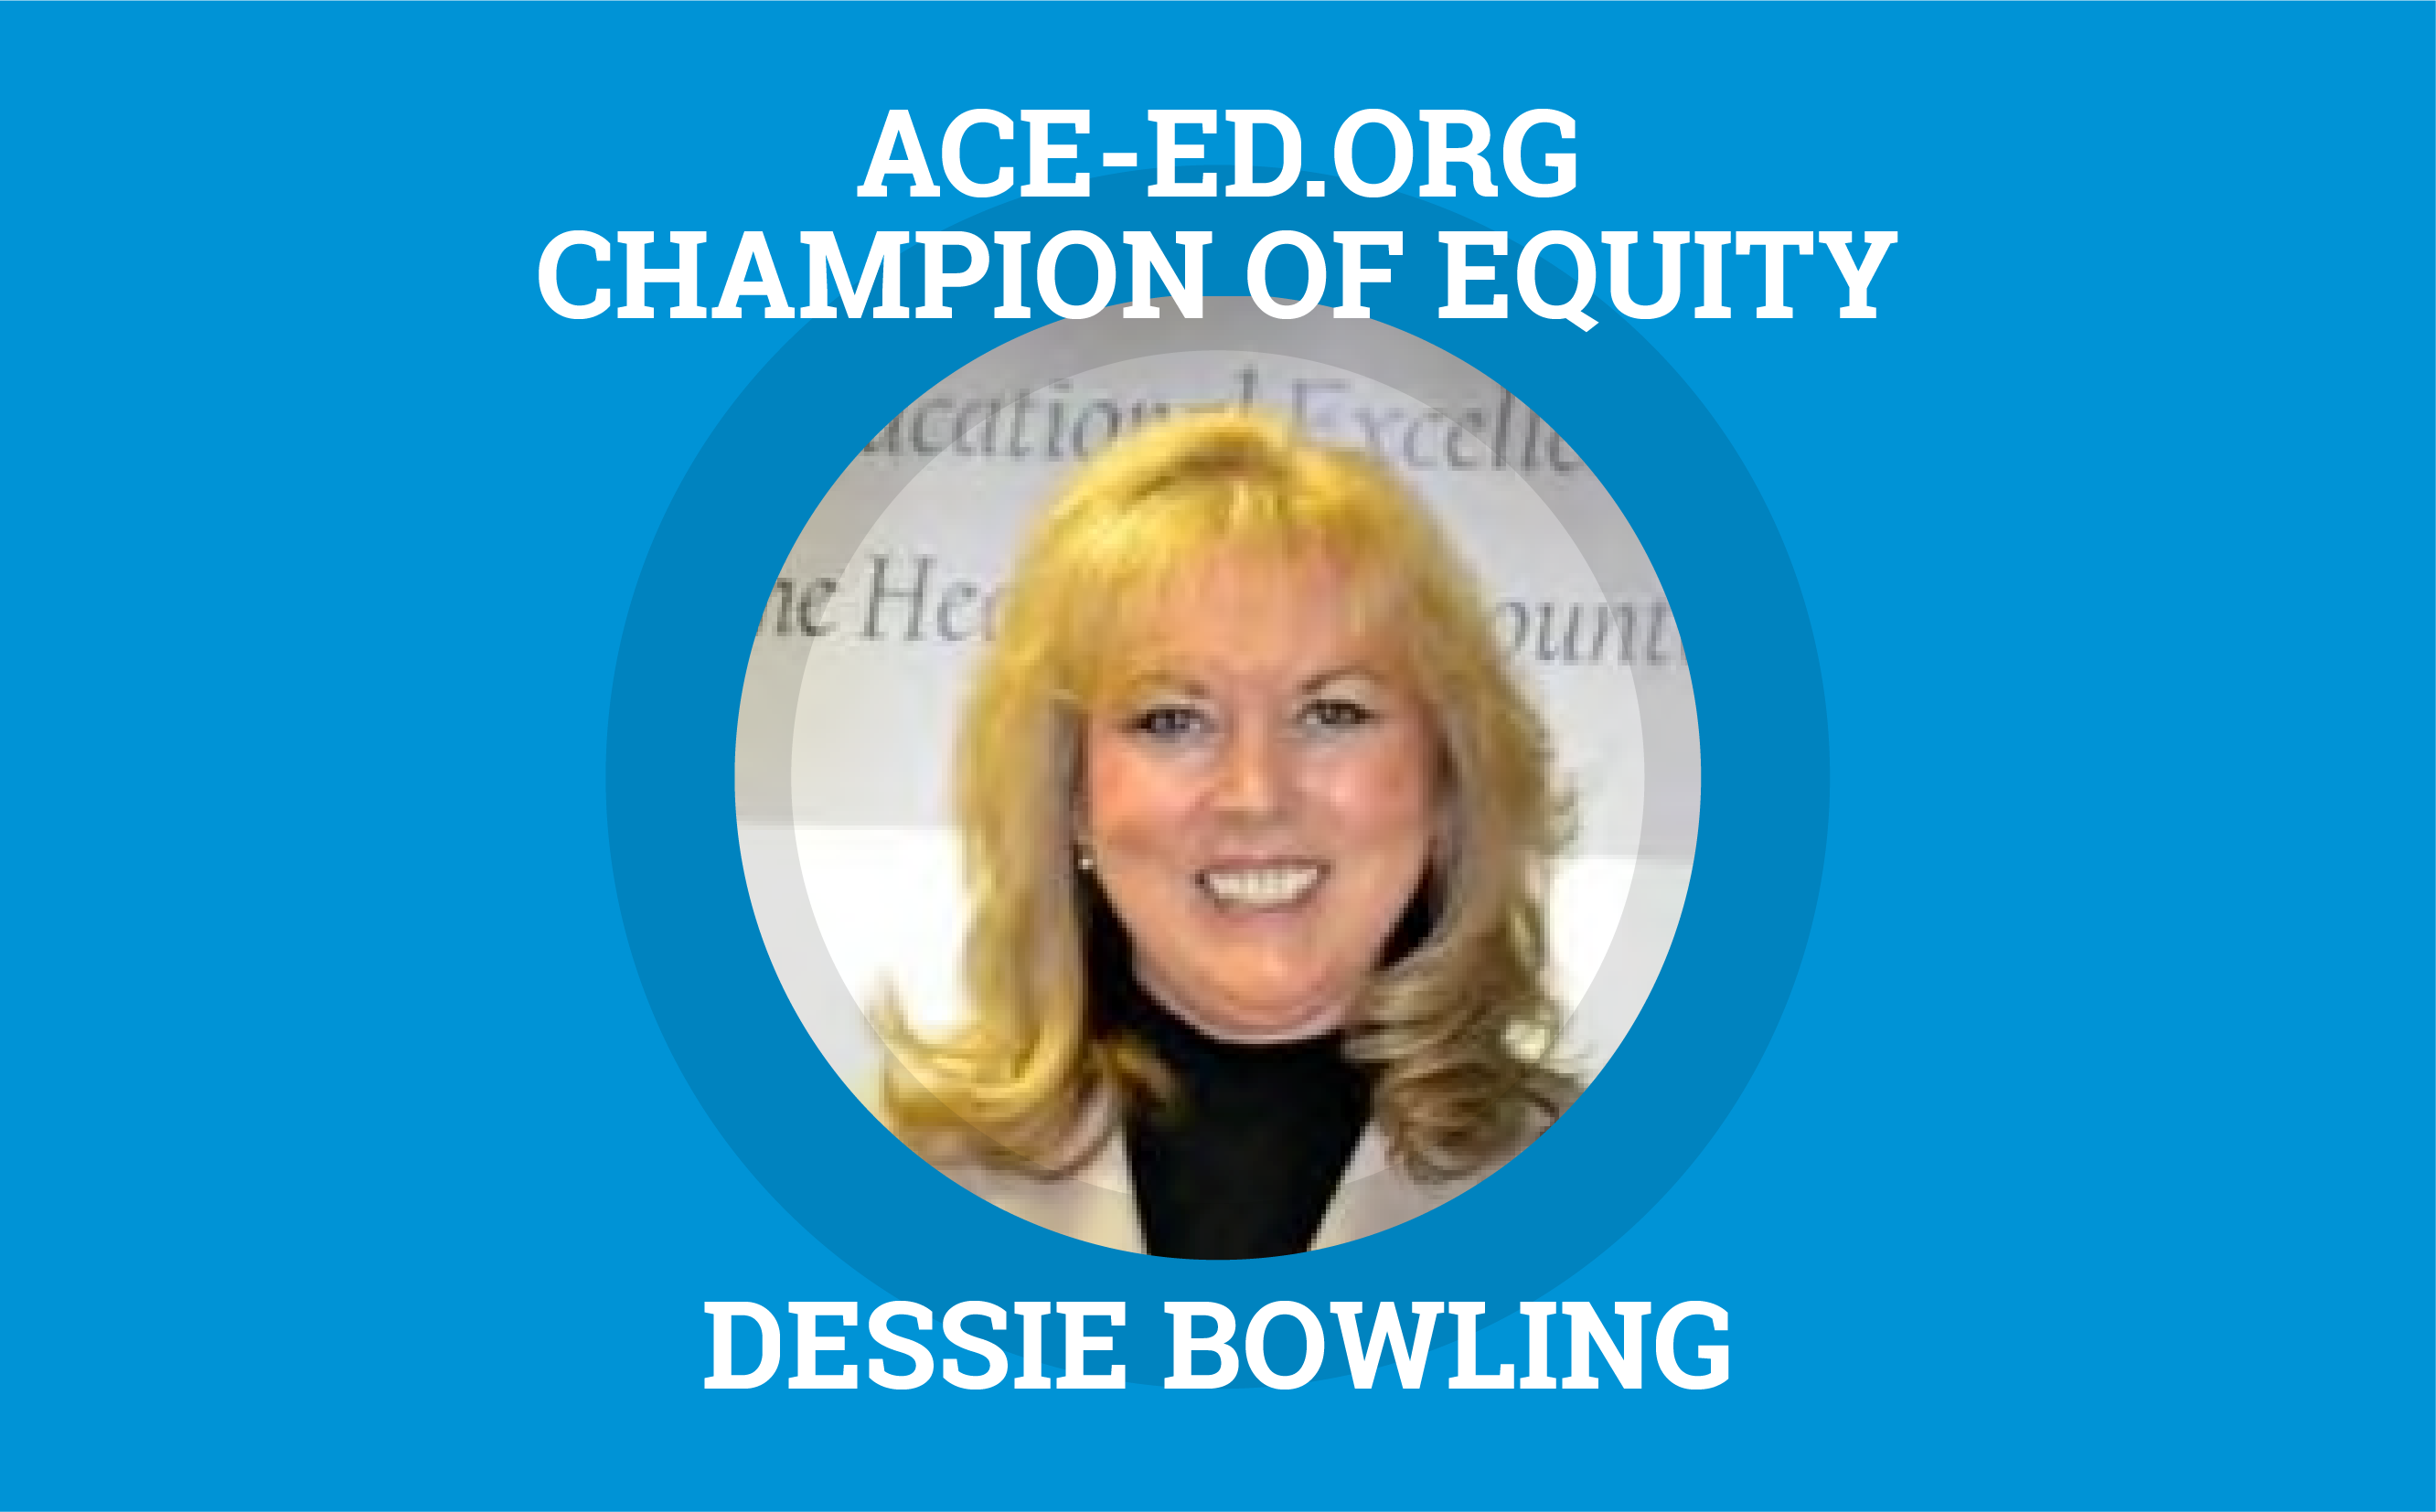 Dessie Bowling, Champion of Equity